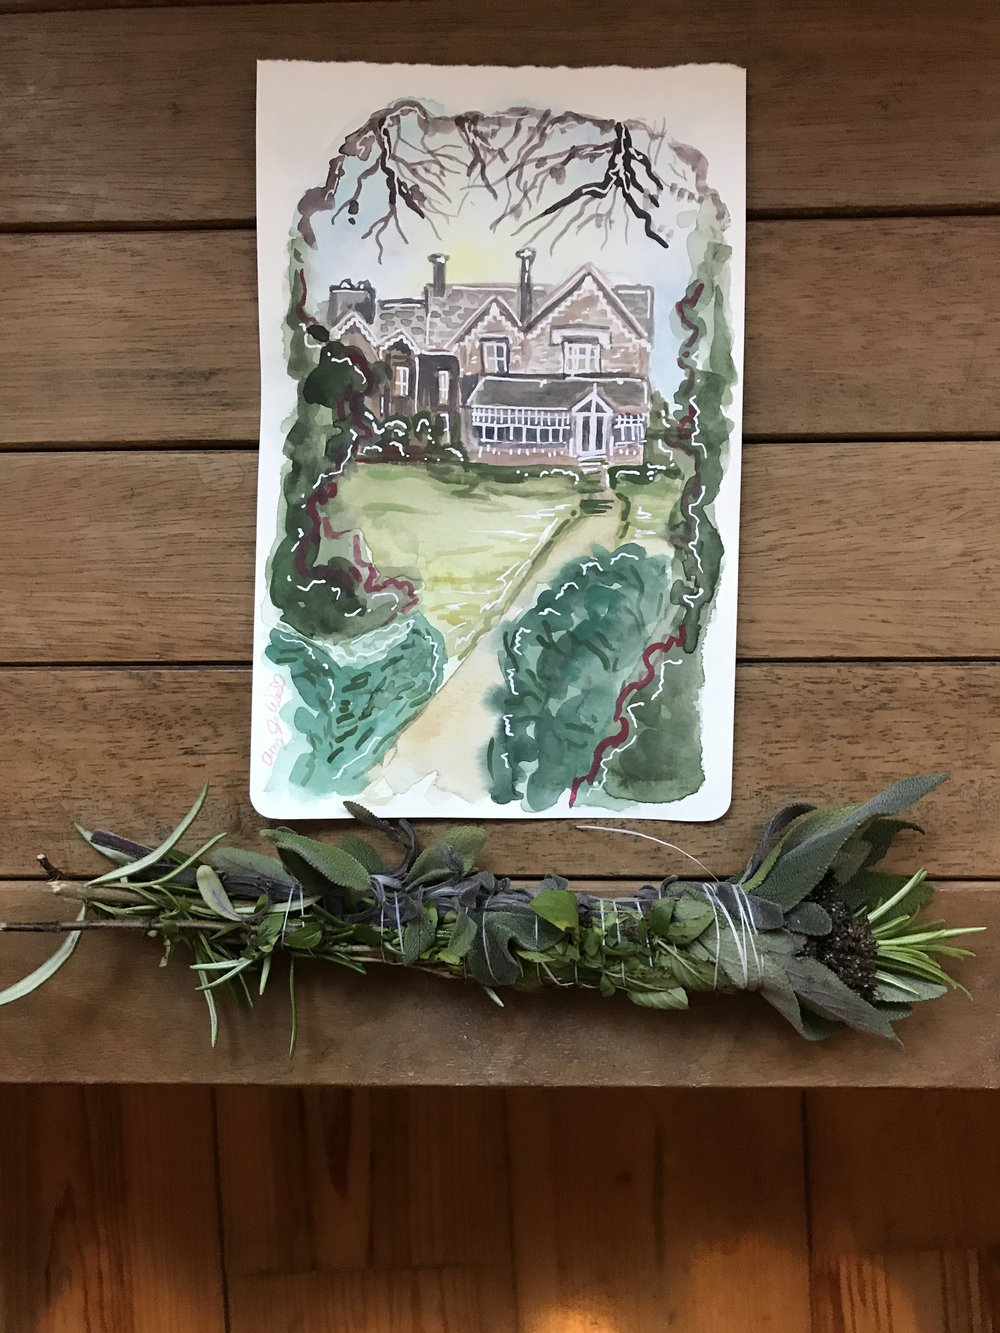 A parting gift to the airbnb owner paired with some herbs and such I got from the garden and brought home with me to dry out and burn.